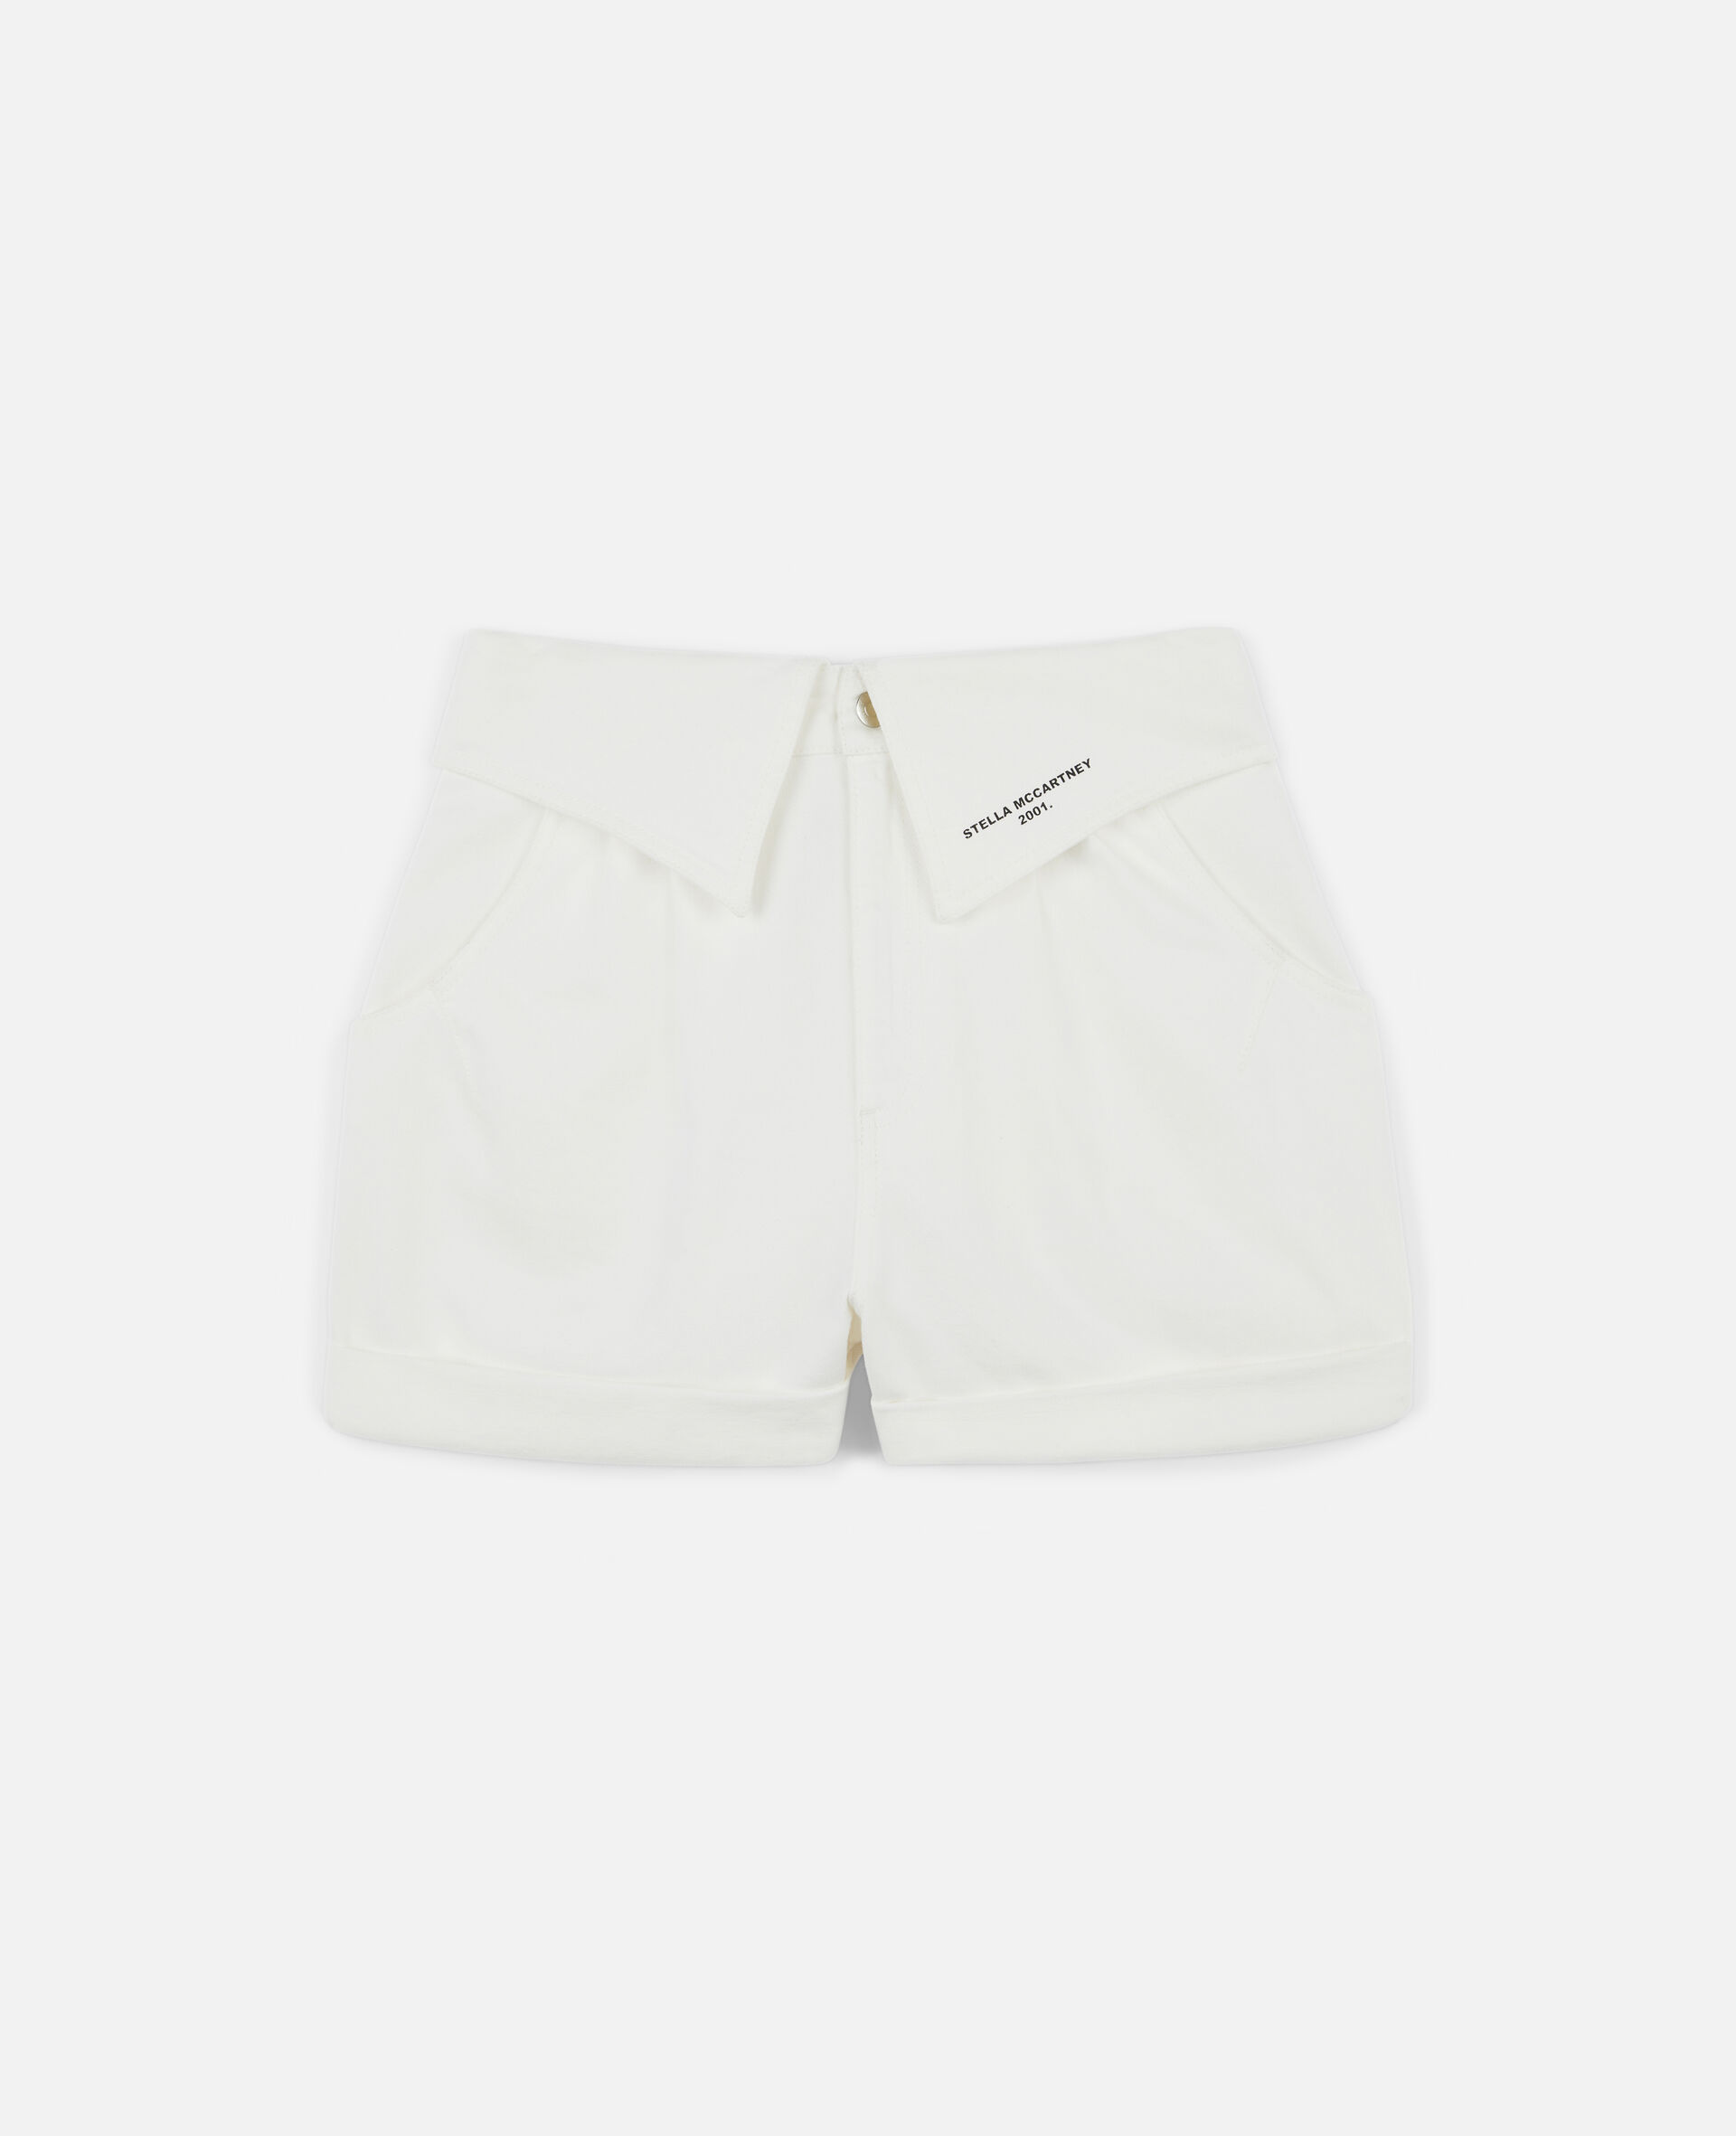 'Stella McCartney 2001.' Denim Shorts-White-large